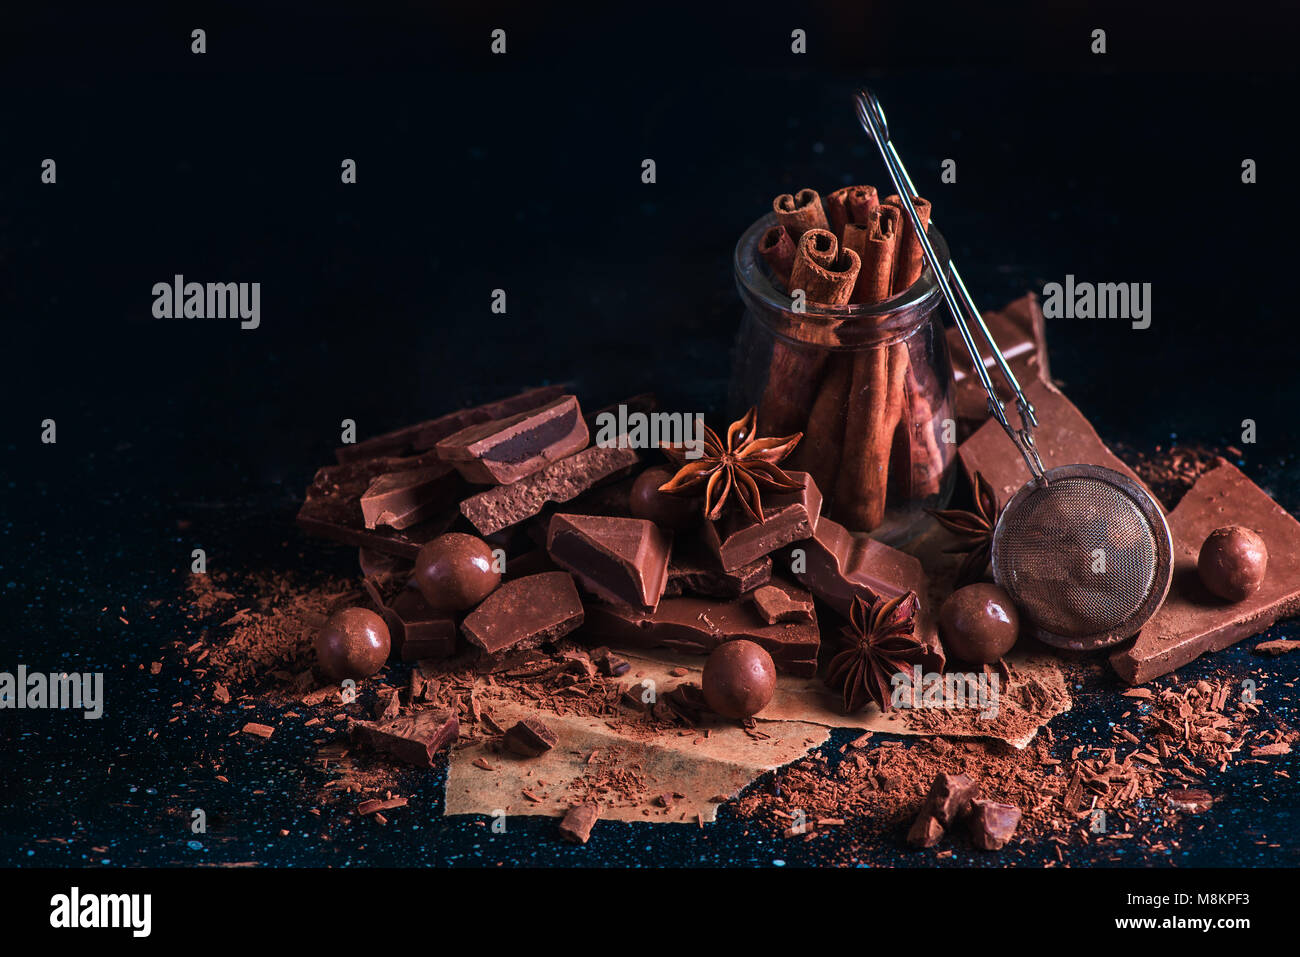 Header with cinnamon in a glass jar, scattered cocoa powder and pieces of broken chocolate on a dark background - Stock Image